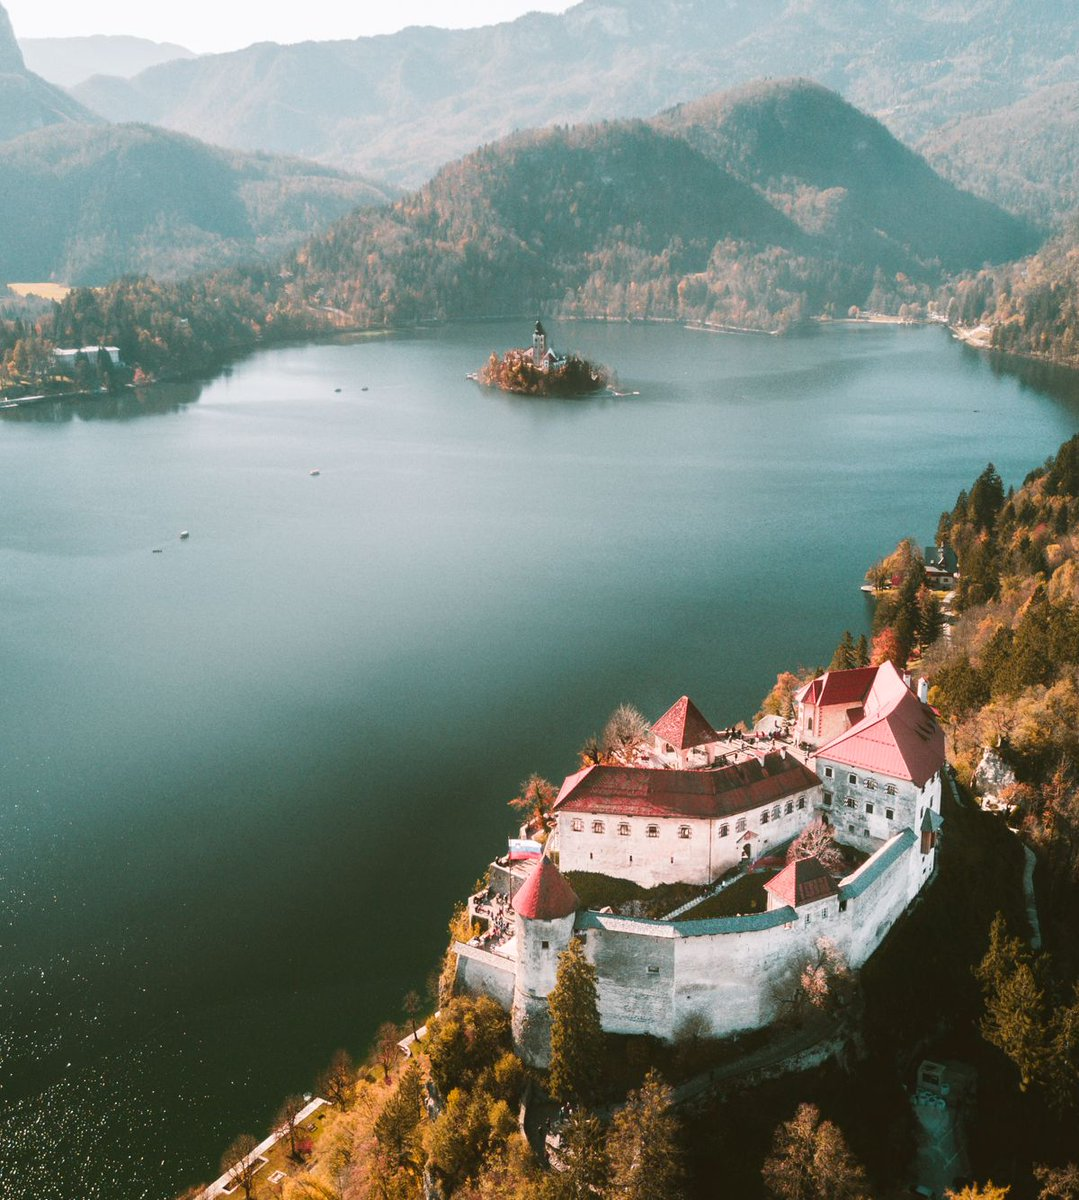 The magnificent Bled Castle on Lake Bled, Slovenia #lakebled #bled #slovenia #feelslovenia #europe @feelslovenia @sloveniainfo<br>http://pic.twitter.com/PwUEnCyQ41